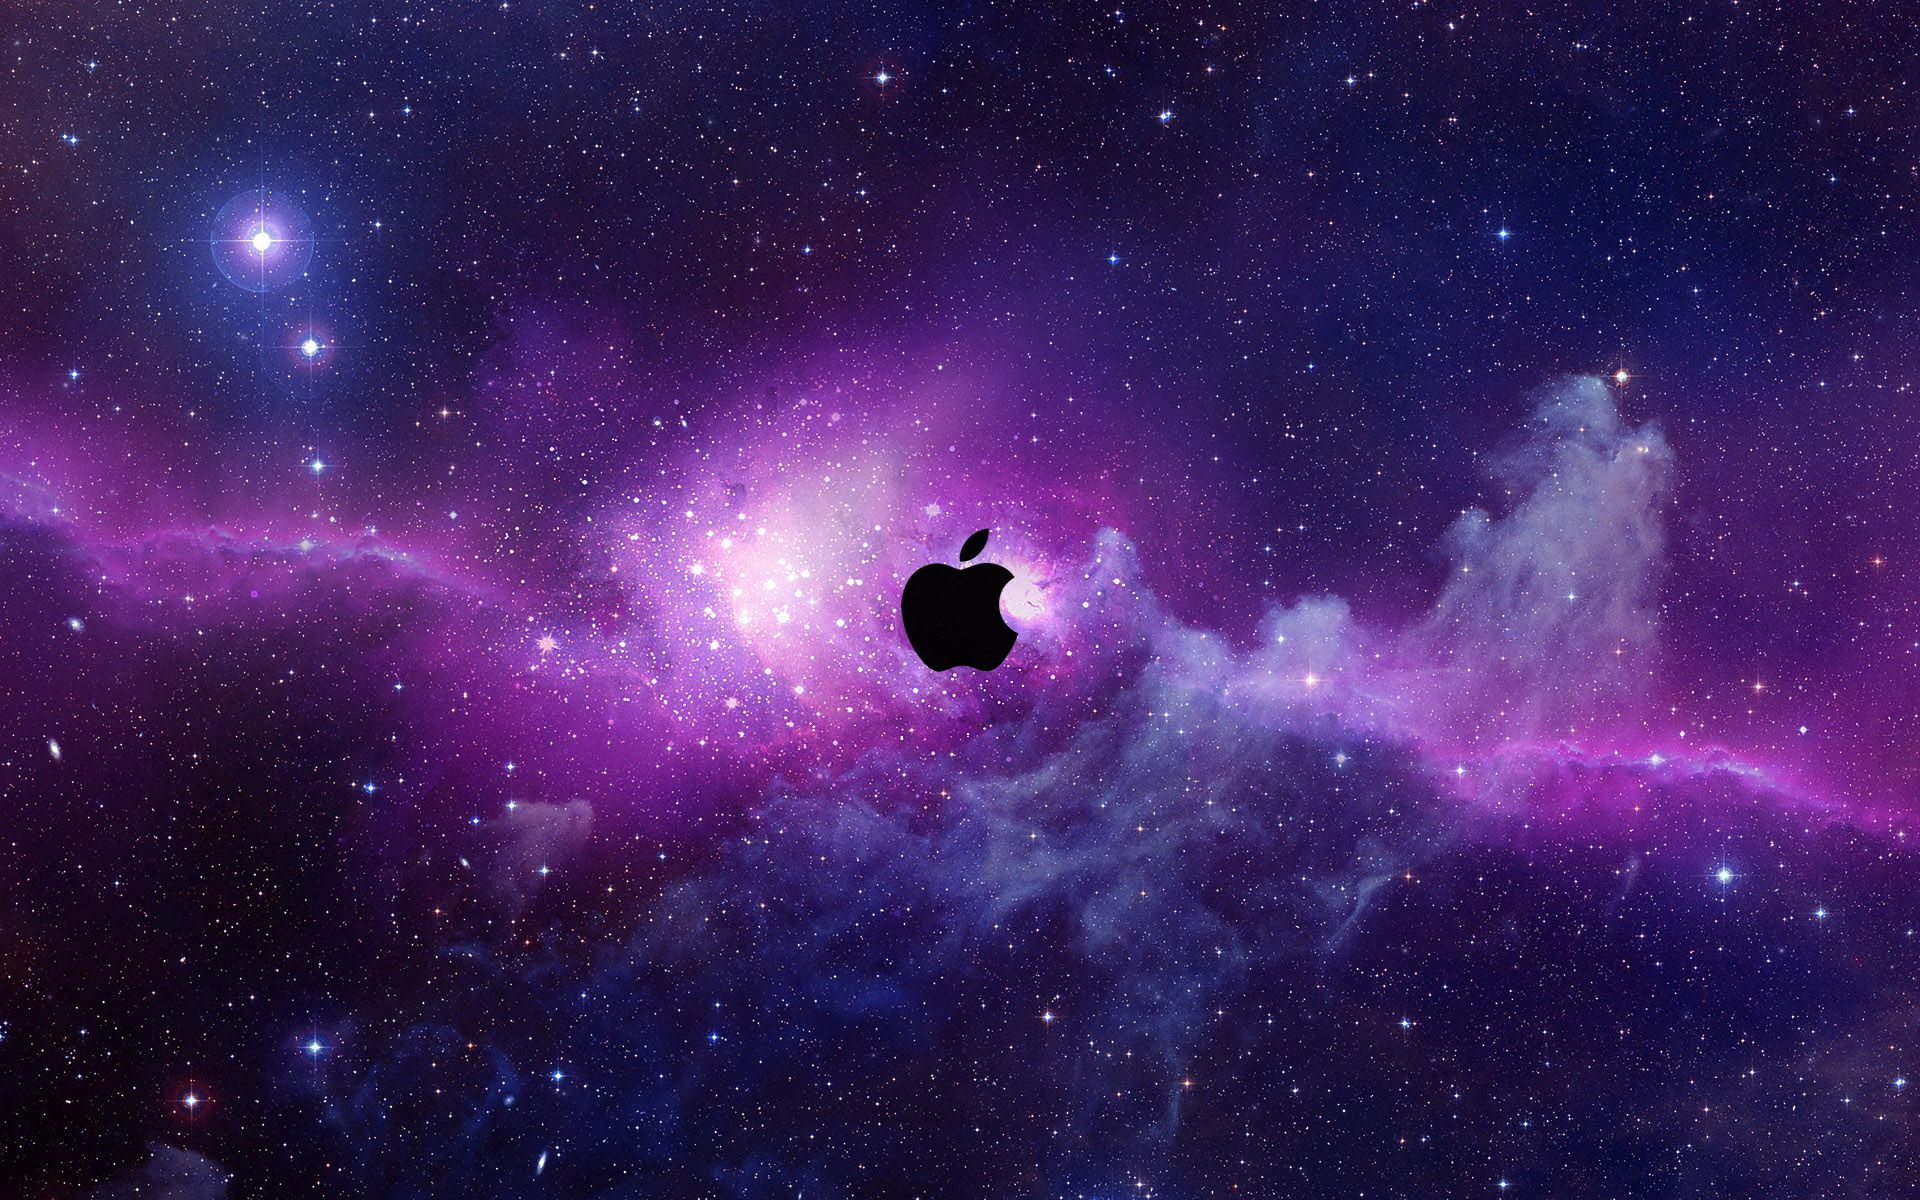 A purple hued space scene with the Apple logo